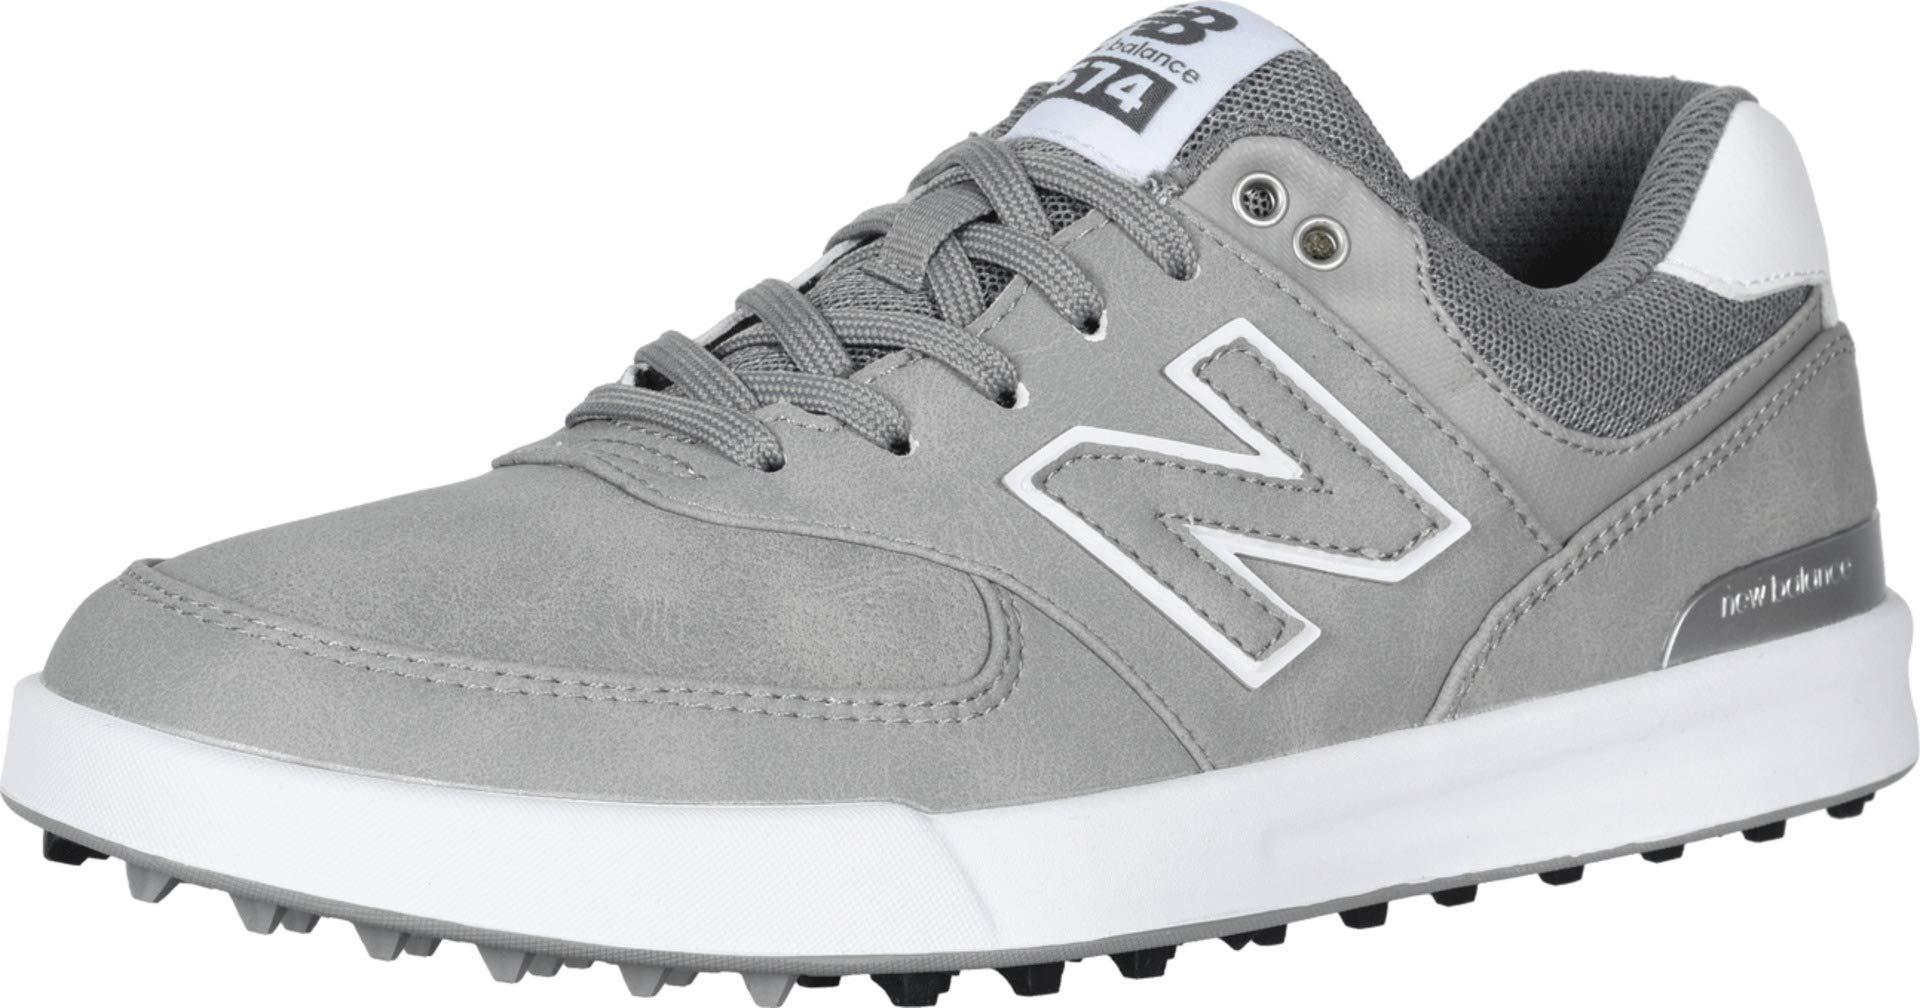 New Balance Leather 574 Greens Golf Shoes in Grey (Gray ...